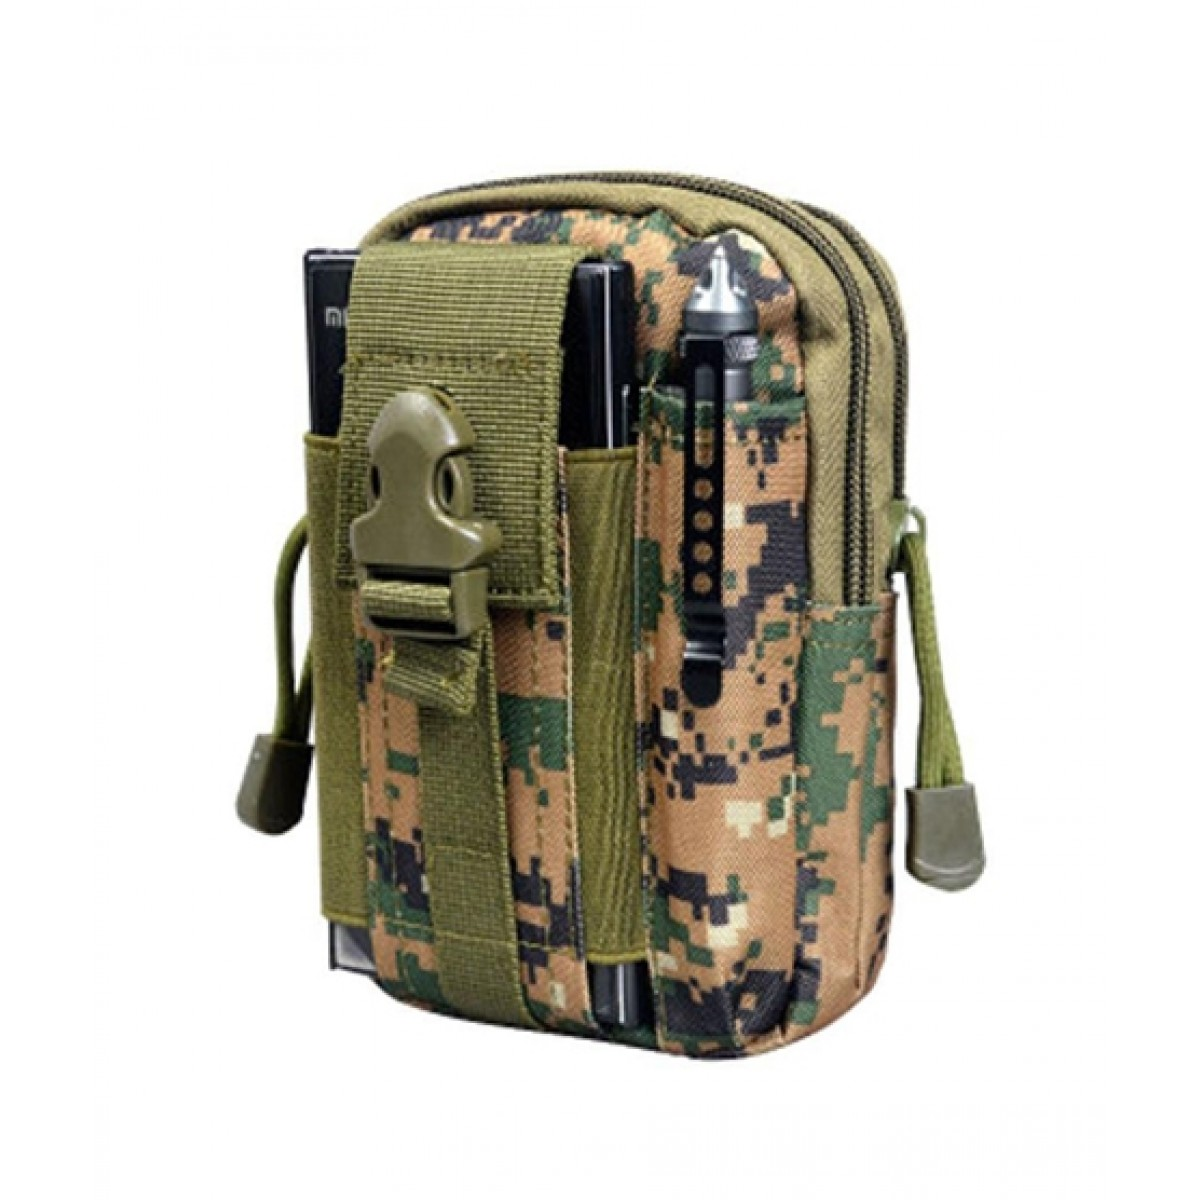 Brand Mall Mini Tactical Accessories Bag Price In Pakistan Buy